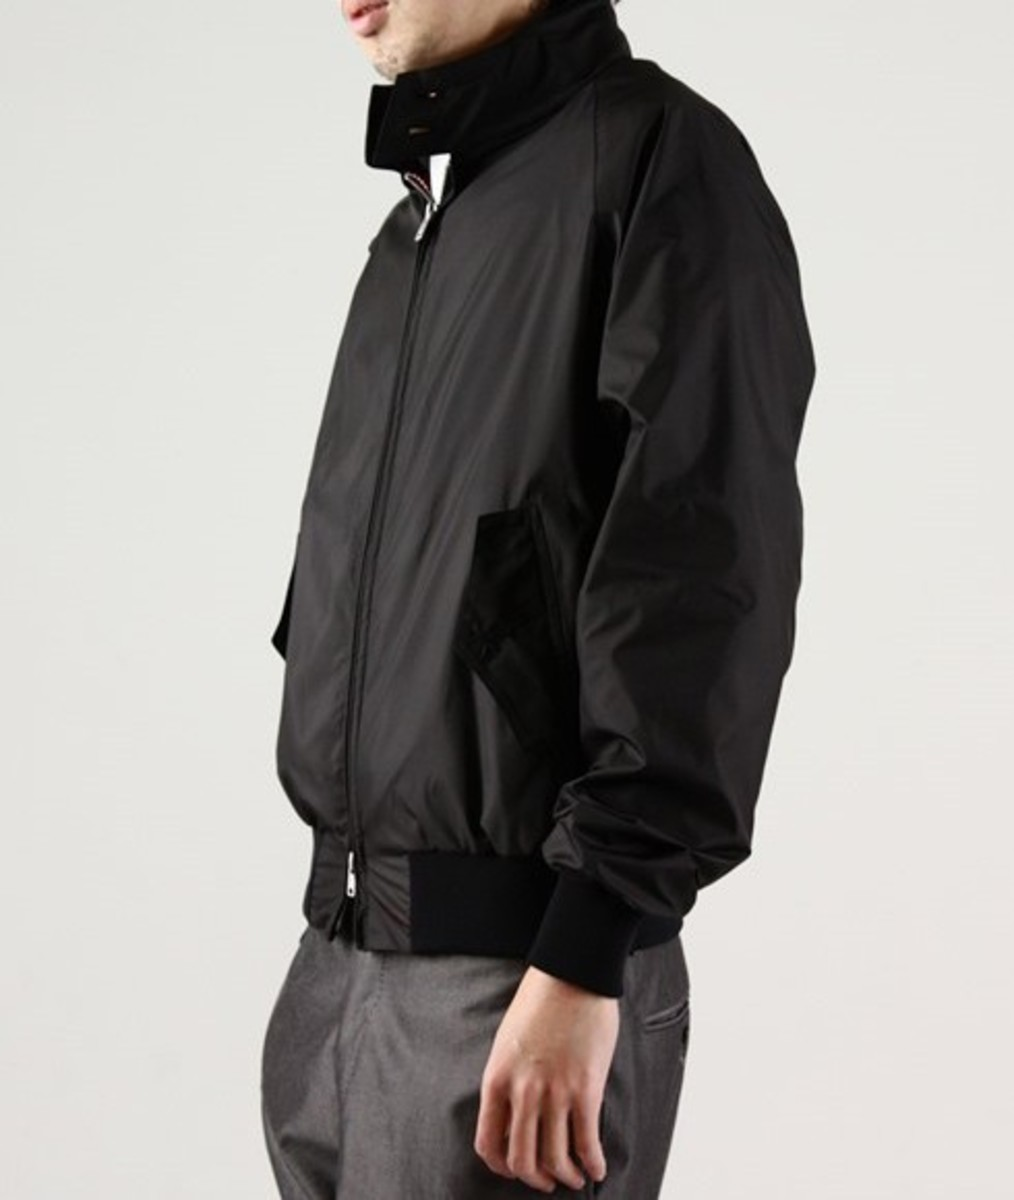 BARACUTA x BEAMS+ - Spring 2009 G9 Jacket